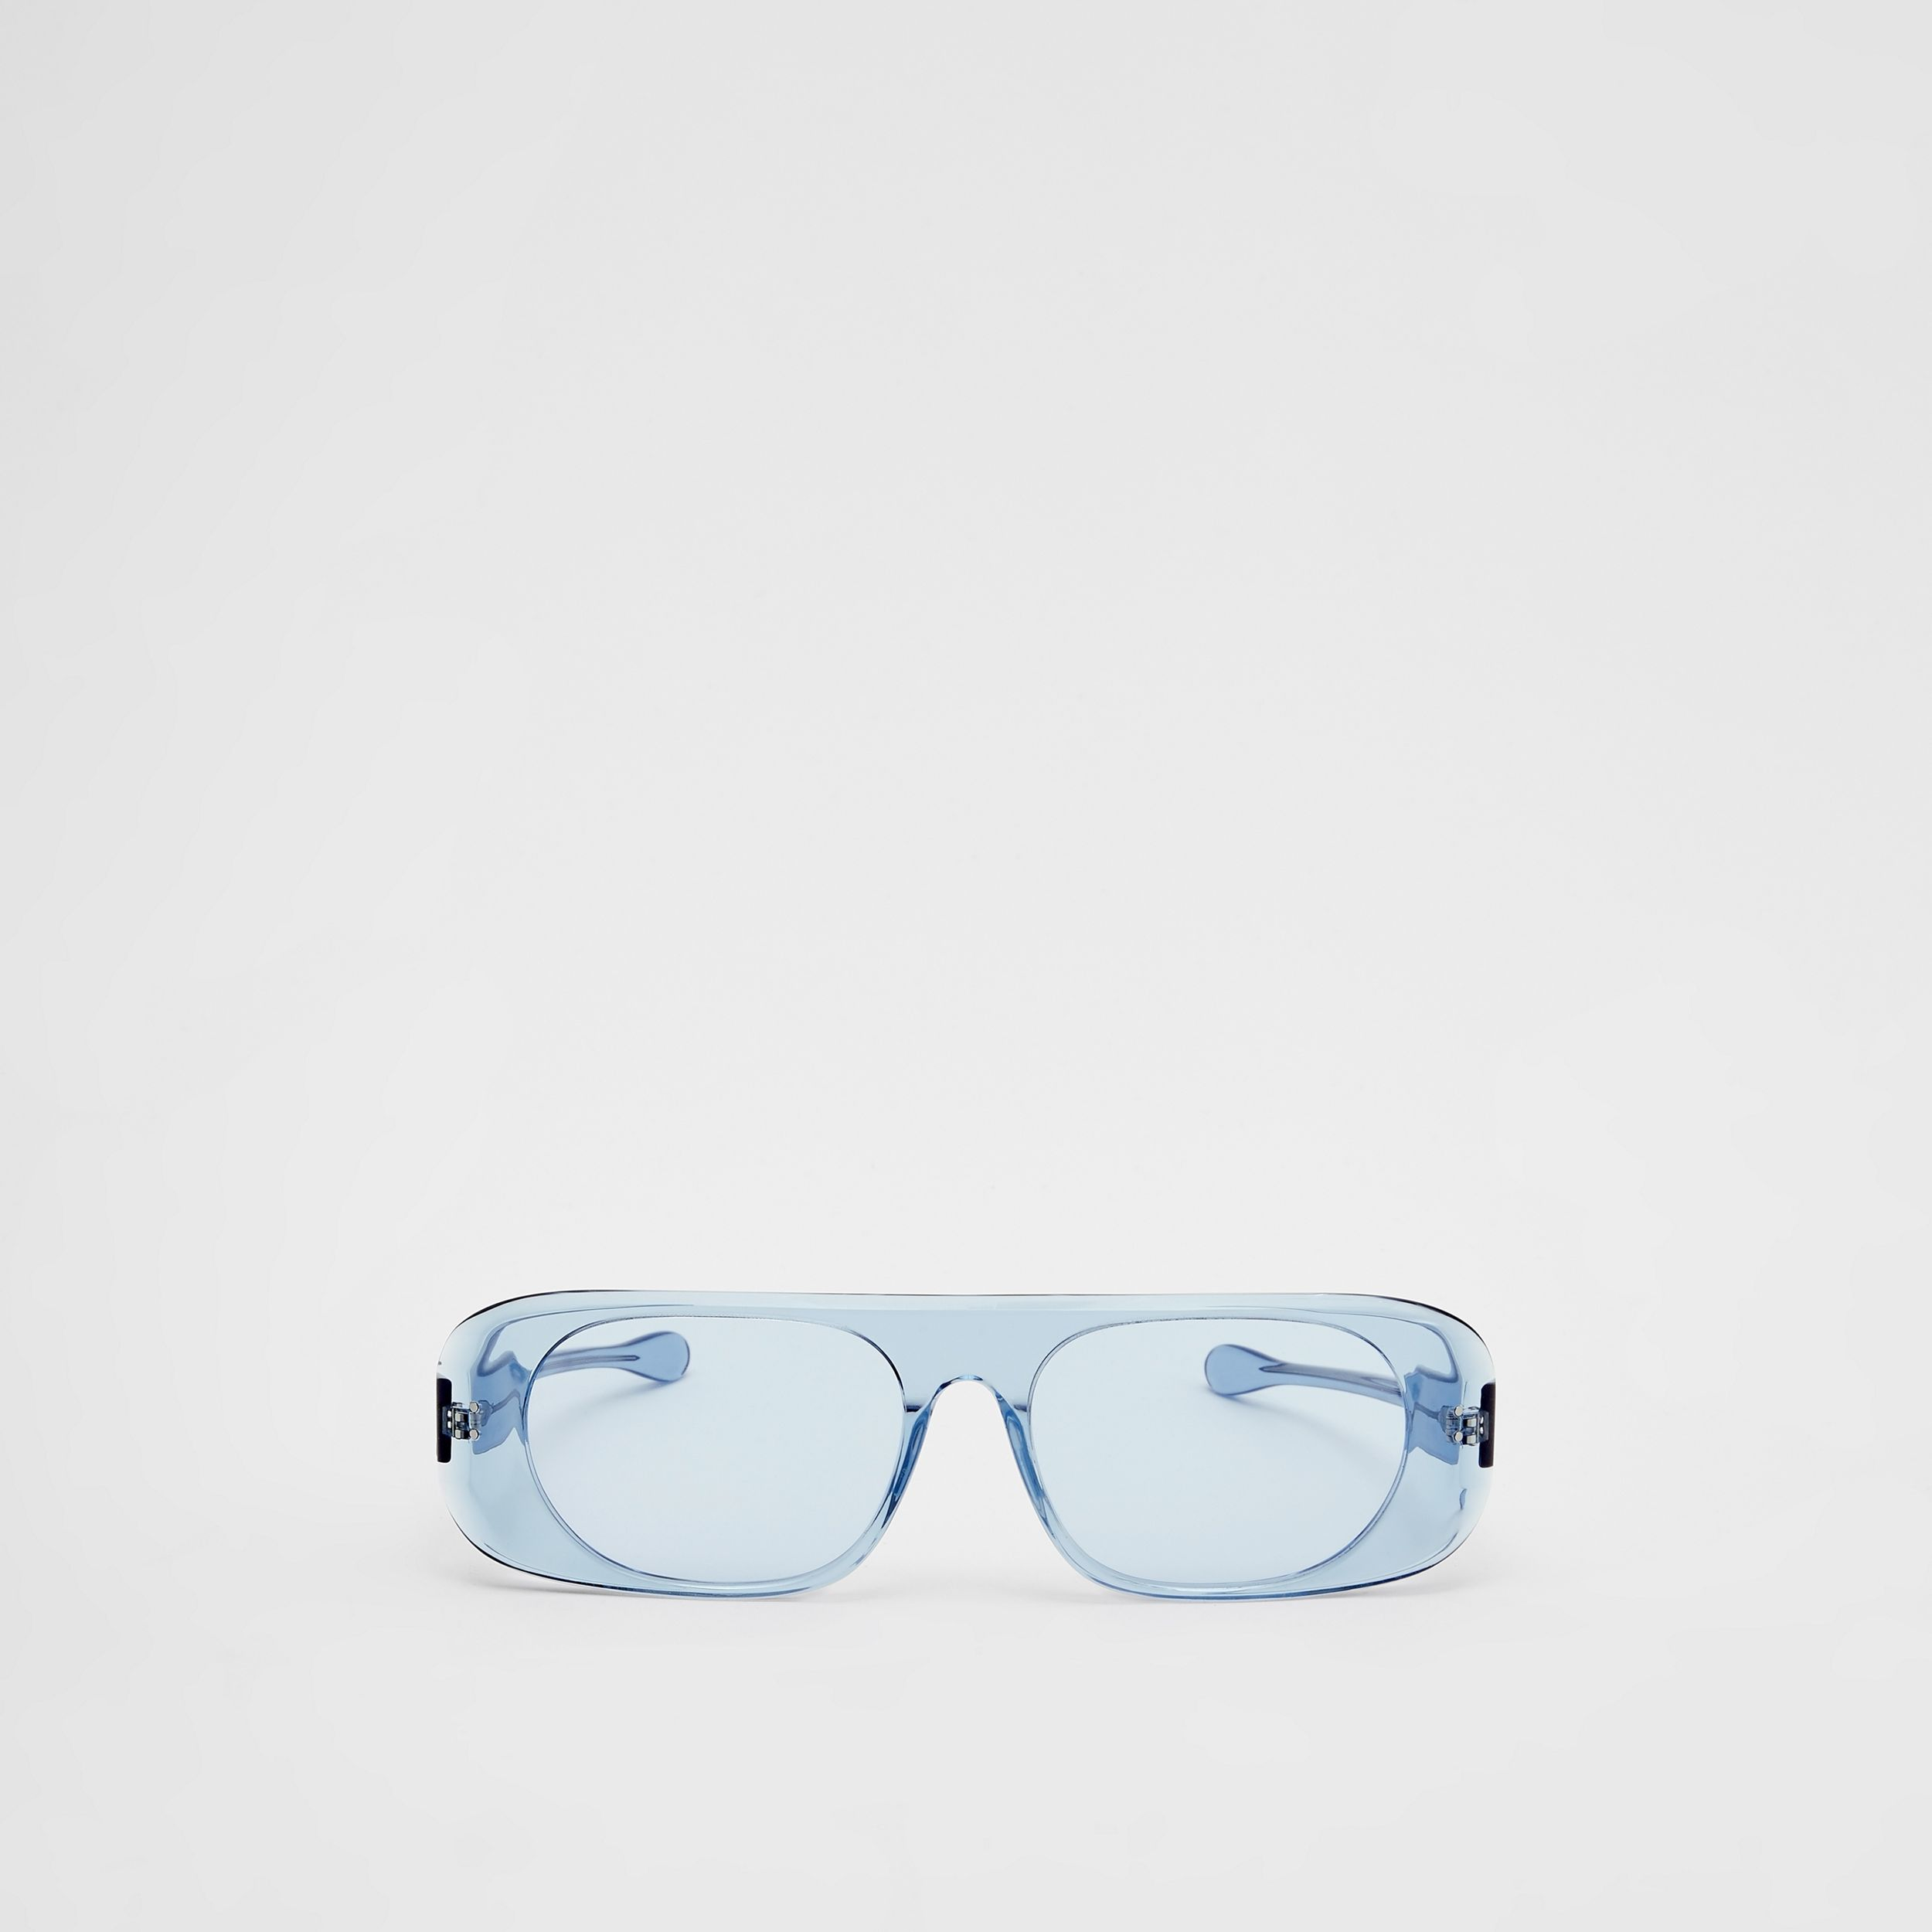 Blake Sunglasses in Transparent Blue | Burberry Australia - 1